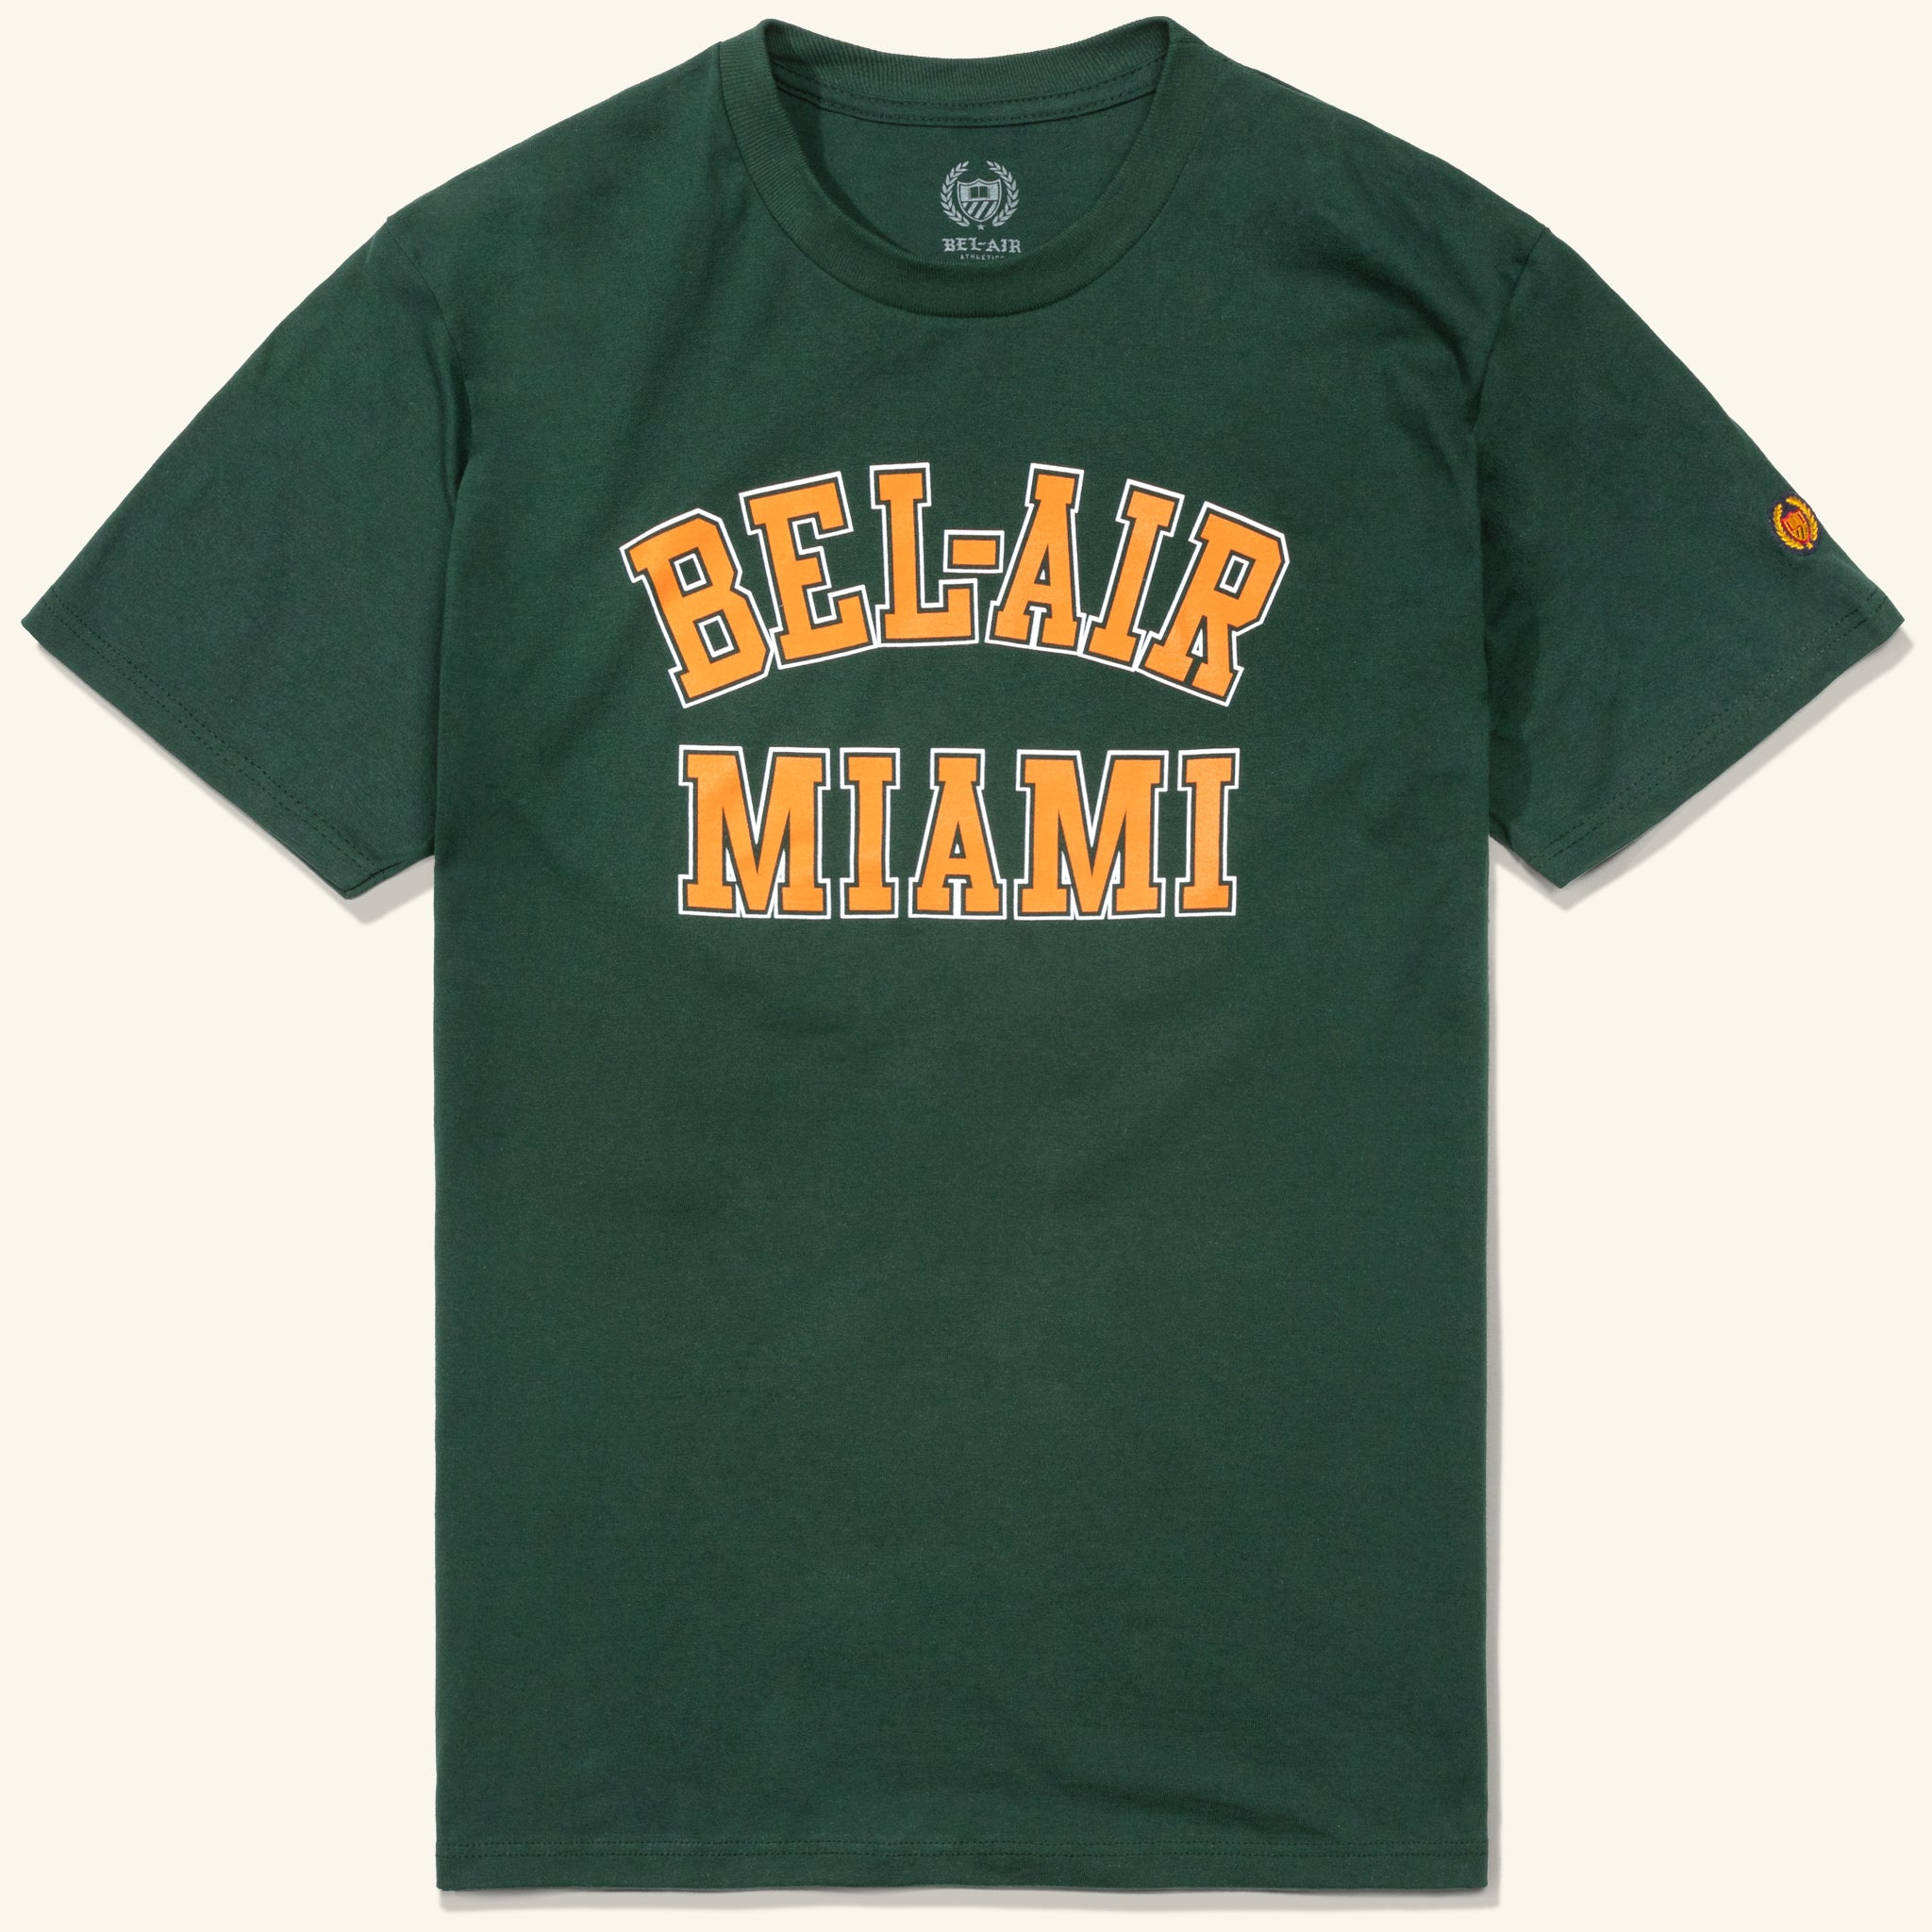 Bel Air Miami Tee Green Image  #1